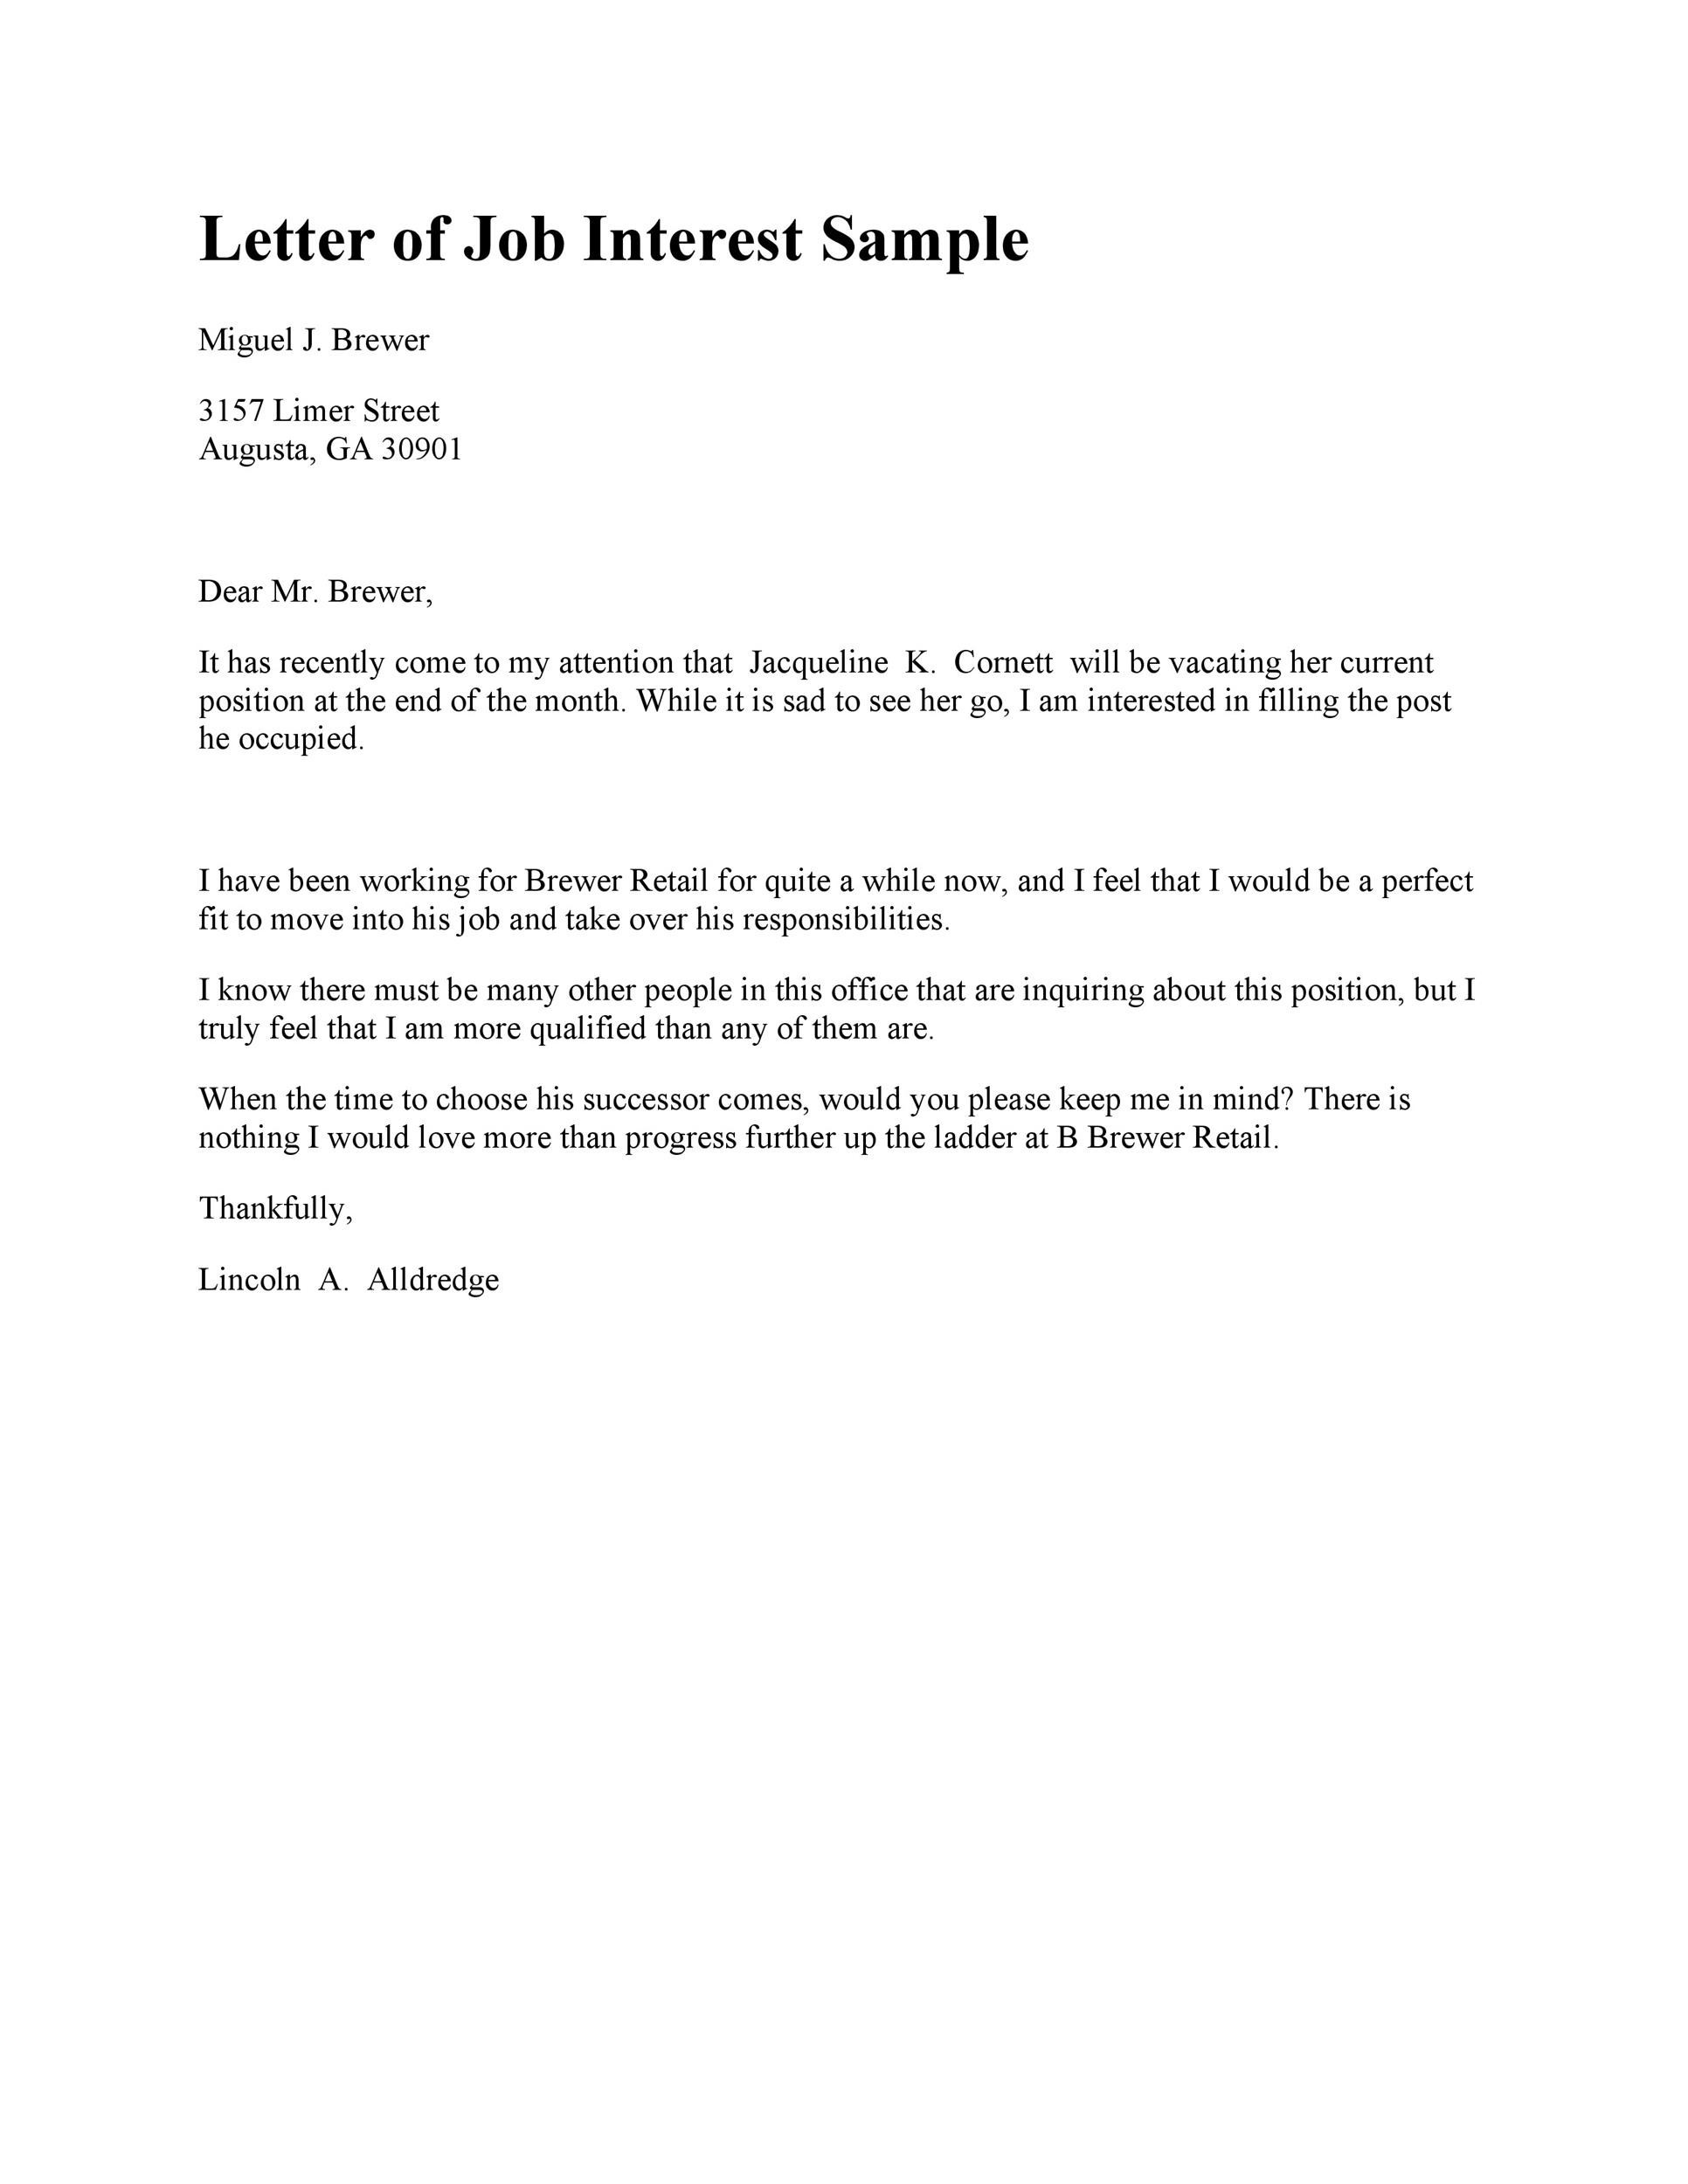 Amazing Letter Of Interest Samples Templates - Job letter of interest sample